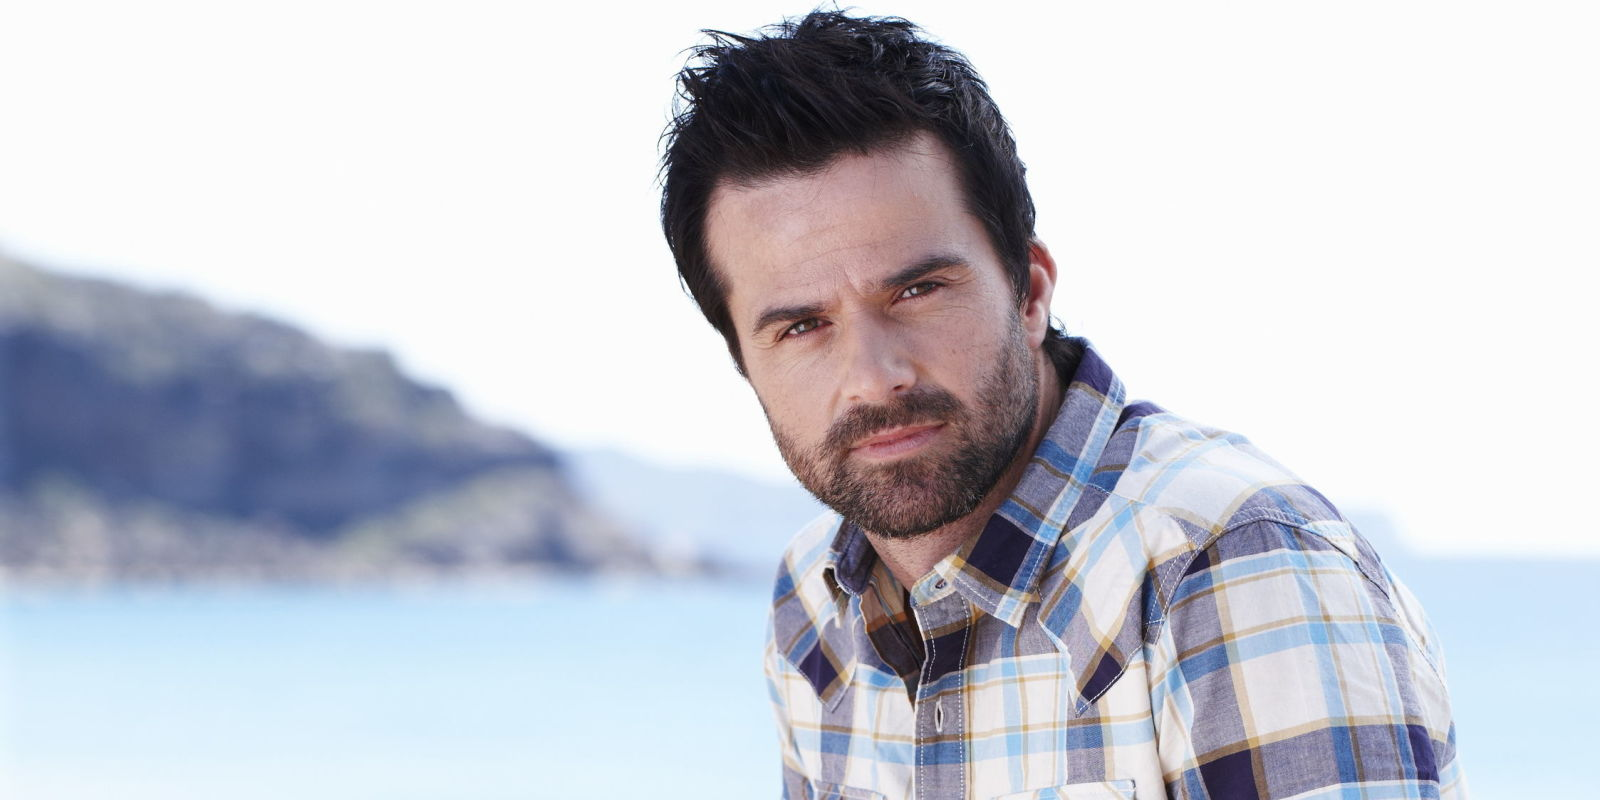 Home And Away Reveals New Character Zac Maguire